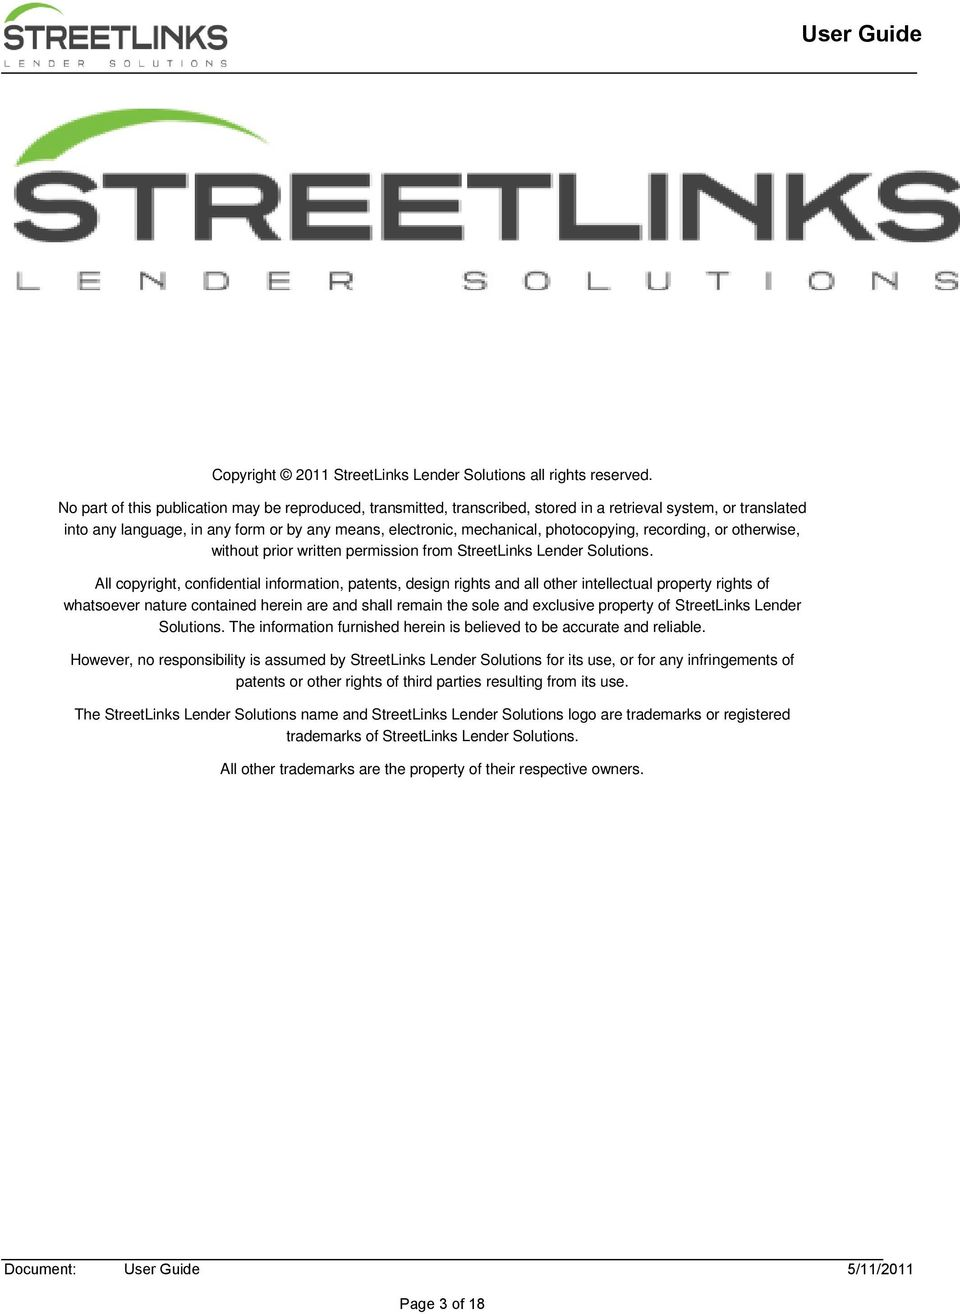 photocopying, recording, or otherwise, without prior written permission from StreetLinks Lender Solutions.